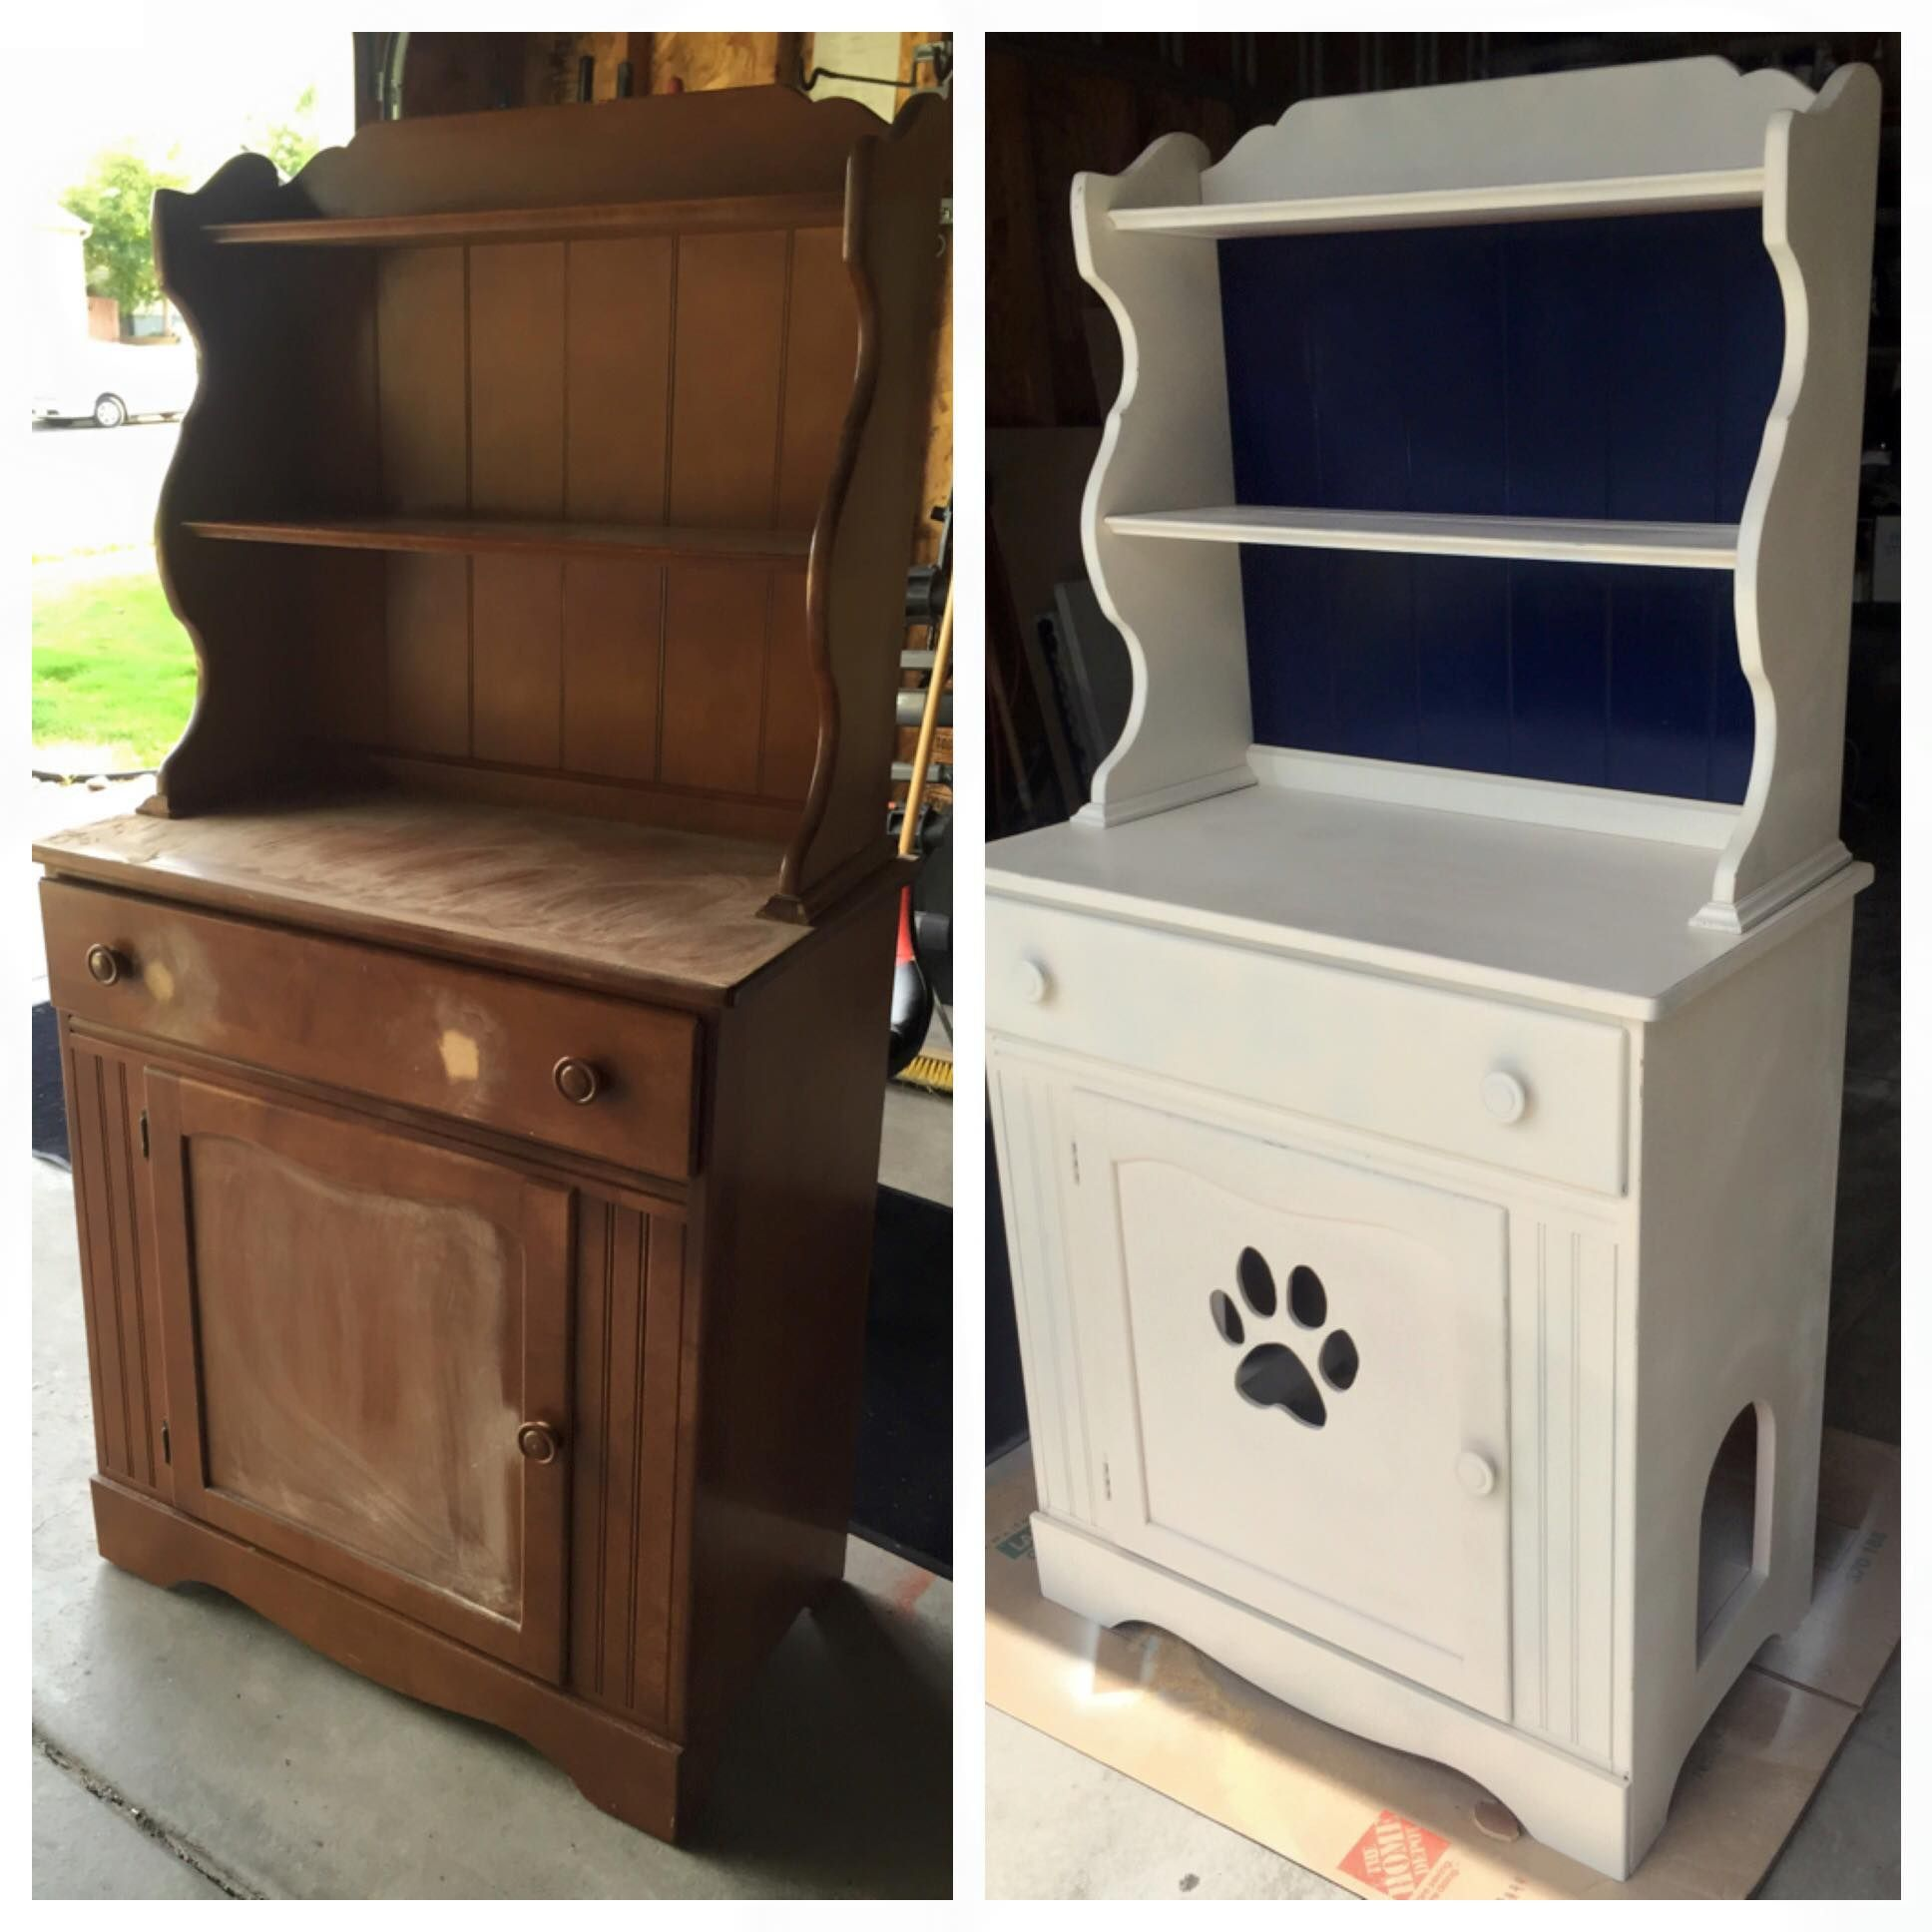 DIY Refurbished A Cabinet To Hide The #cat #litter Box. ~ Just The Photo  But Iu0027m Loving The Look Of This!